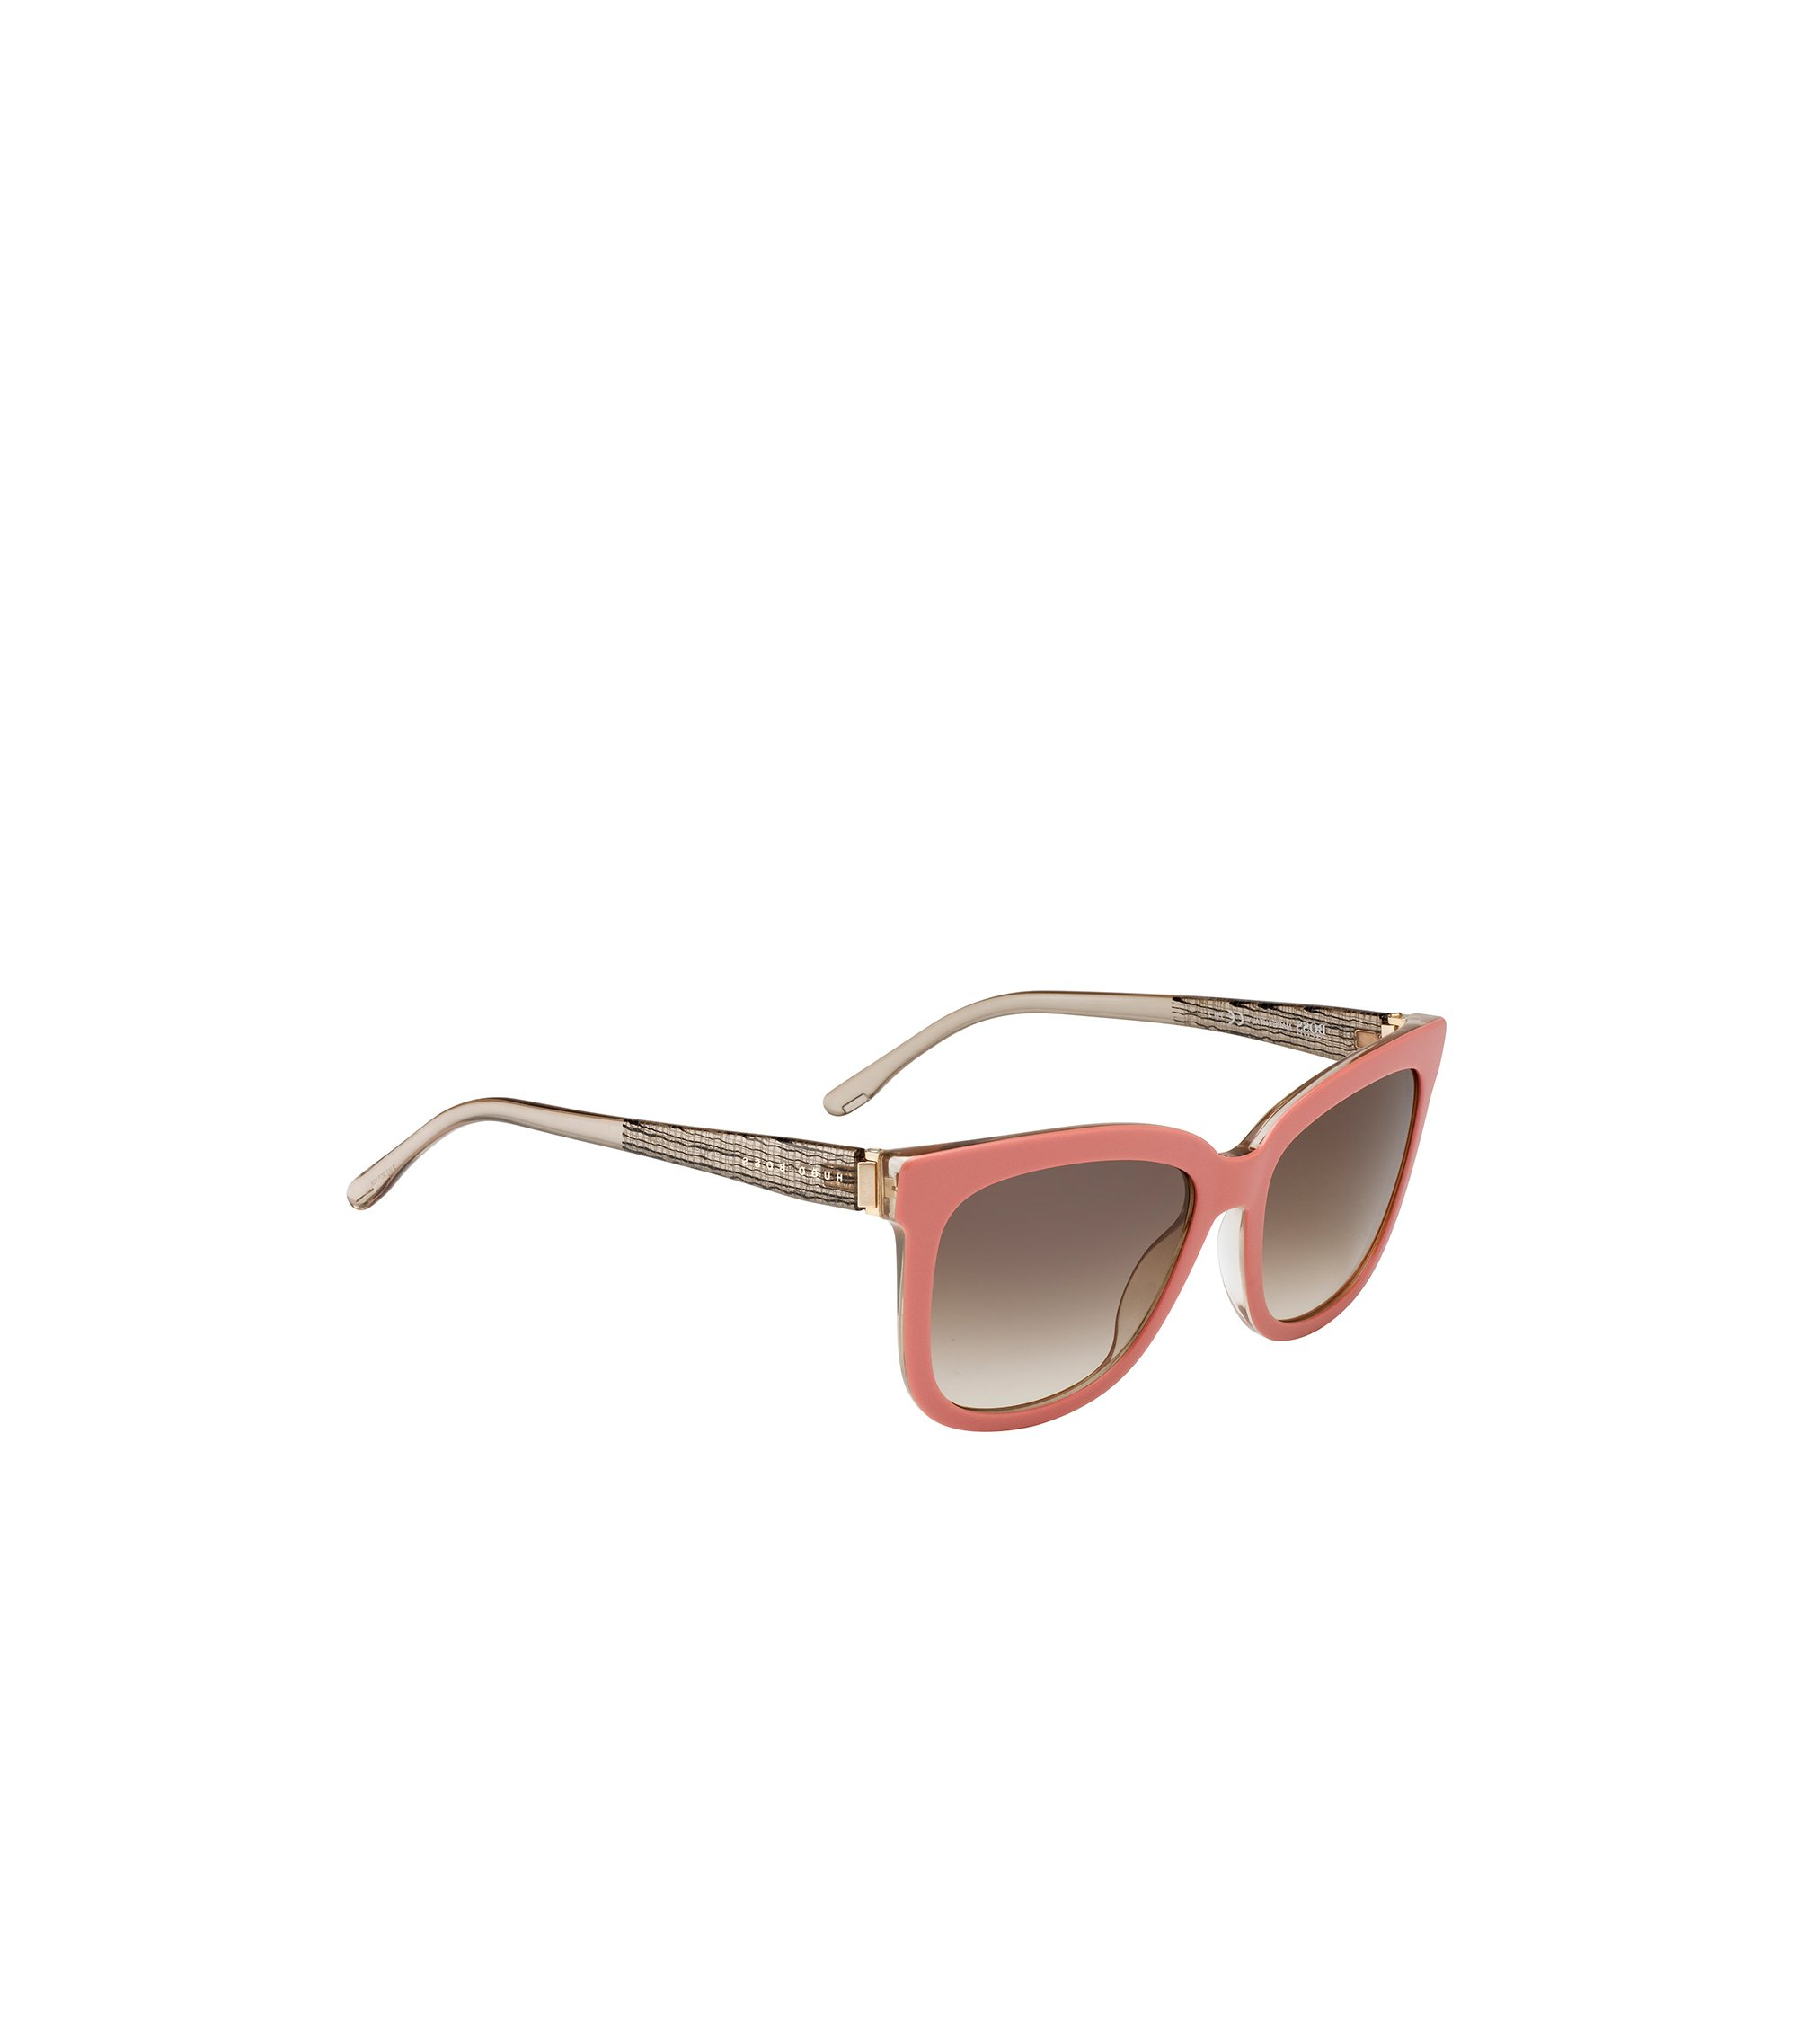 Gafas de sol con montura integral y patillas transparentes. 'BOSS 0850/S', Assorted-Pre-Pack